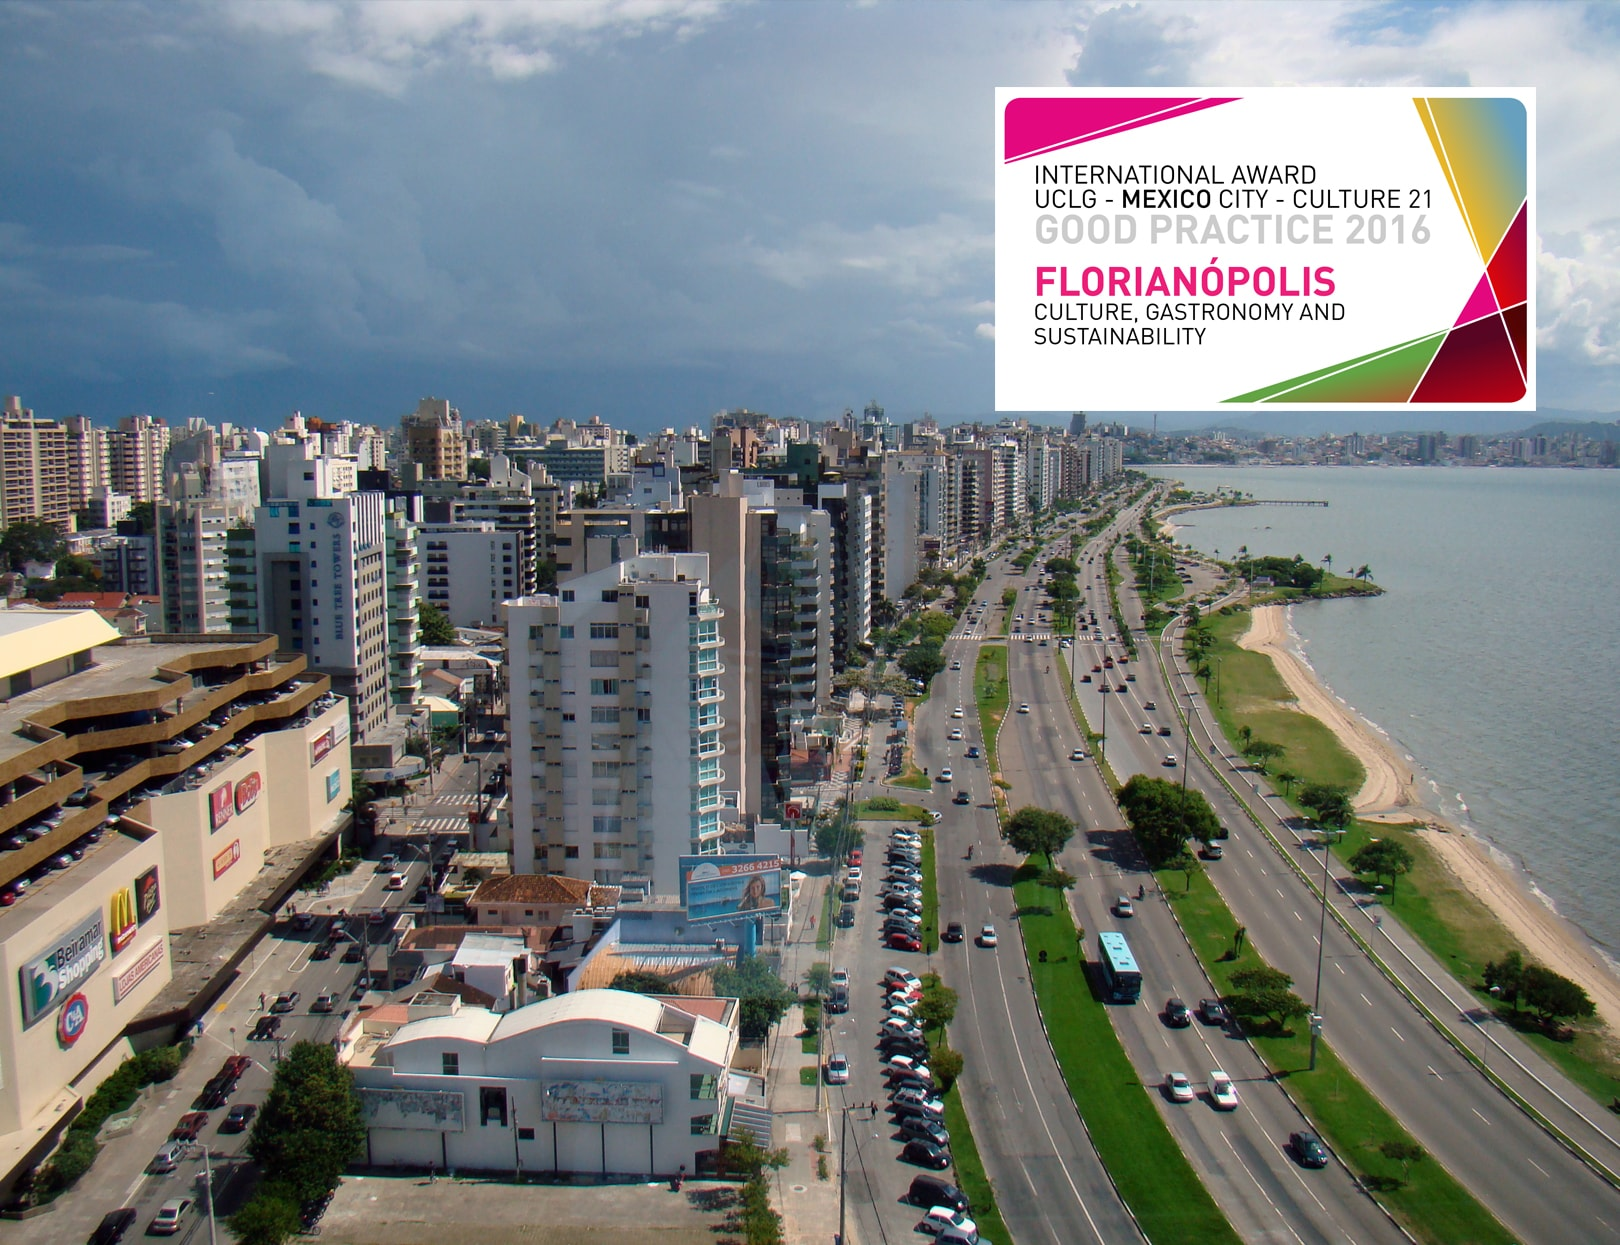 Culture, gastronomy and sustainability in Floriánopolis